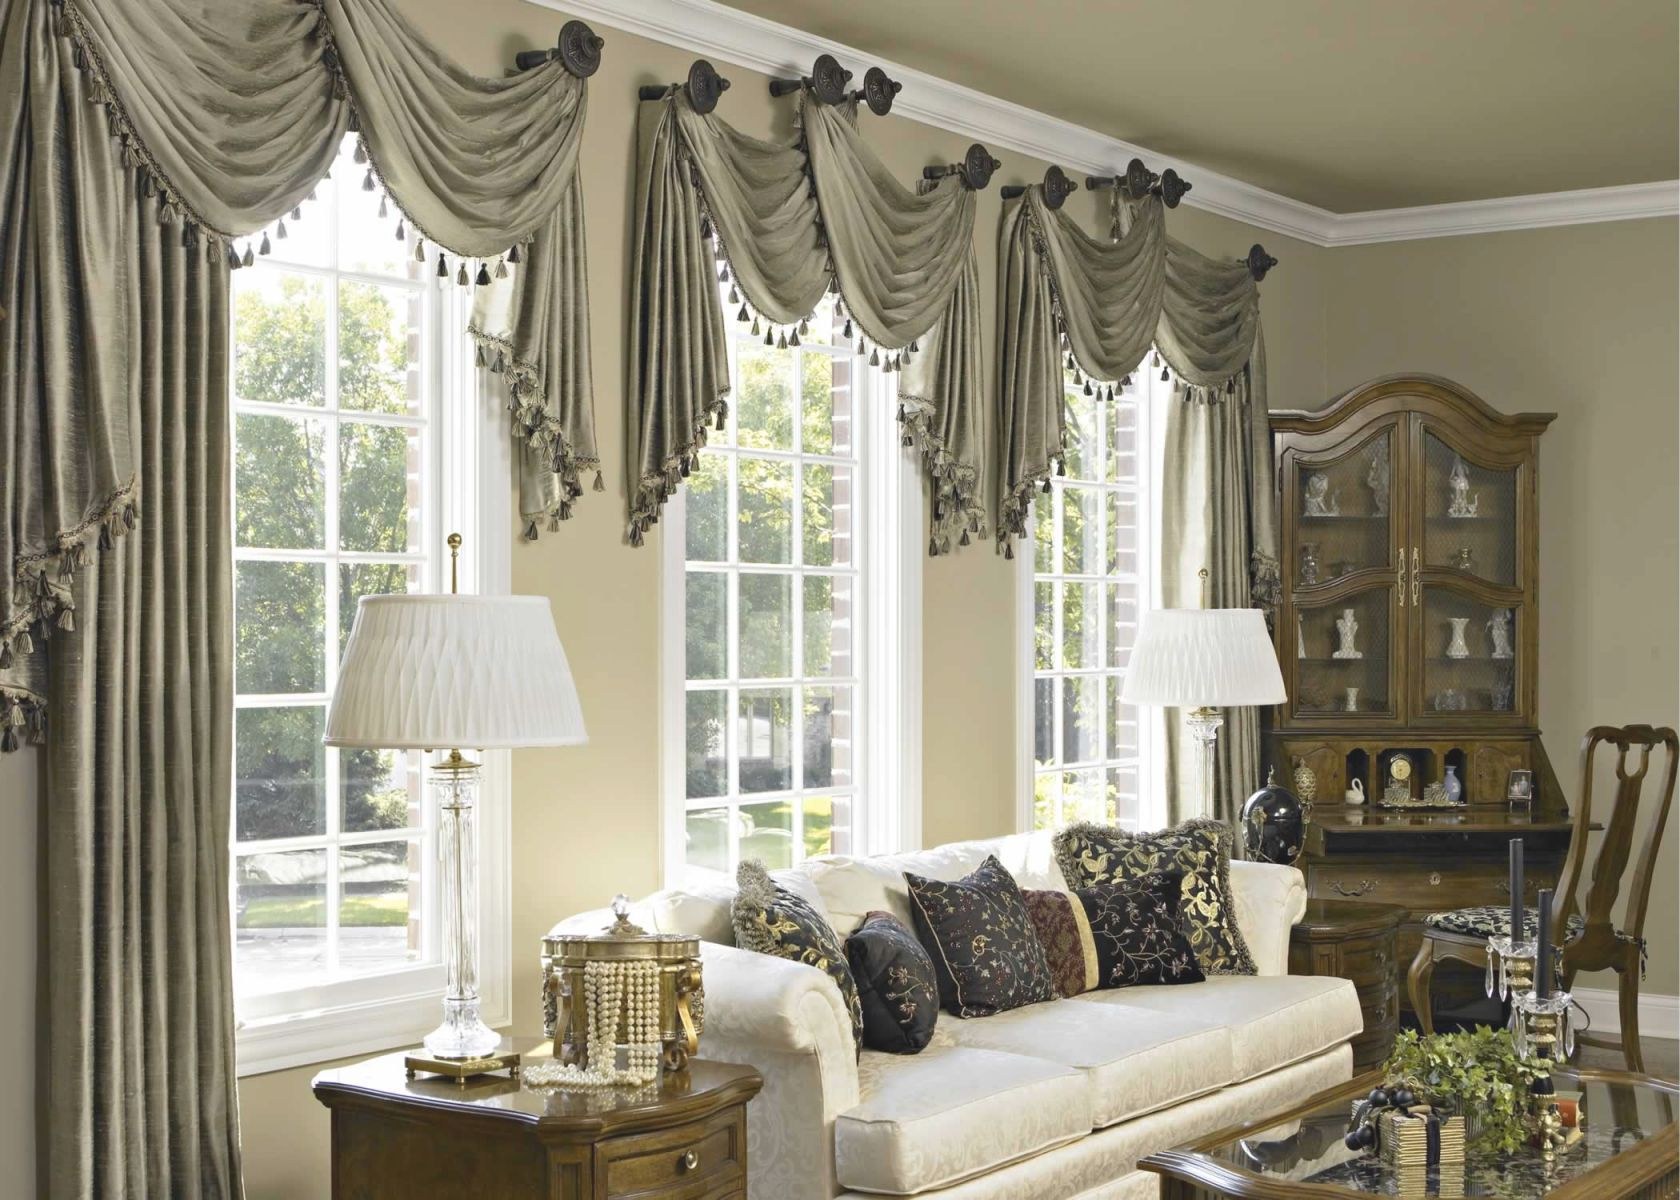 10 Curtain Ideas For An Elegant Living Room intended for Beautiful Window Treatment Ideas For Living Room